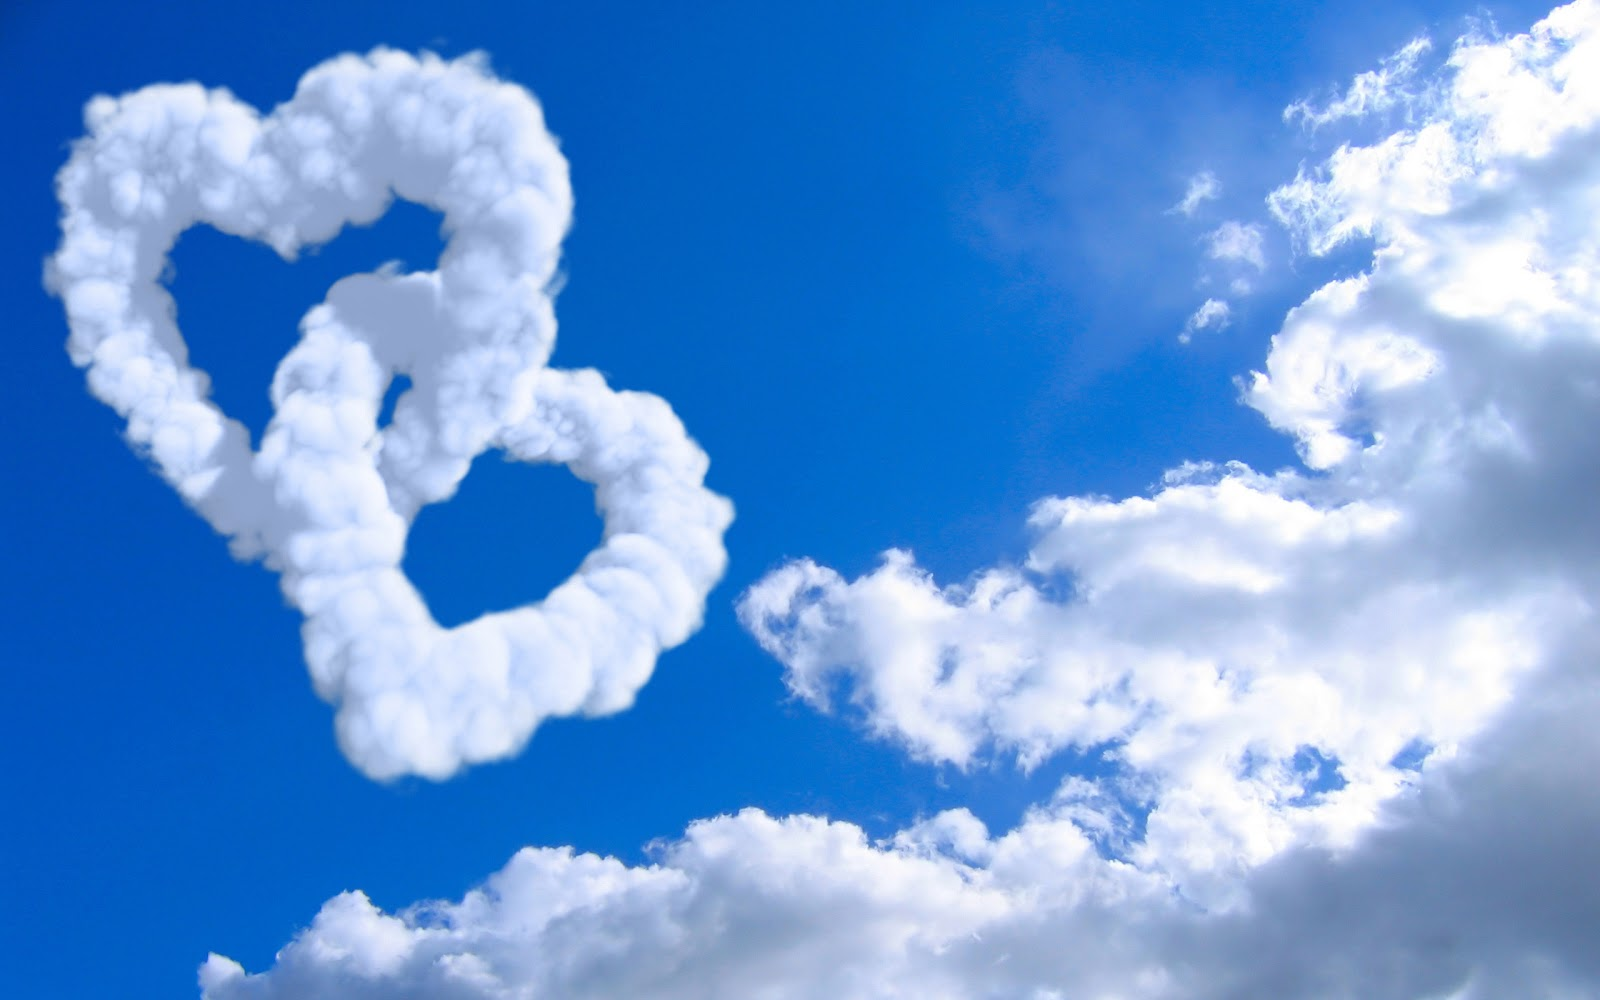 http://1.bp.blogspot.com/-YYCirs78kxc/UICwwKD1Q3I/AAAAAAAABUA/-ZBC5D3UiD8/s1600/love_clouds_hd_widescreen_wallpapers_2560x1600.jpg